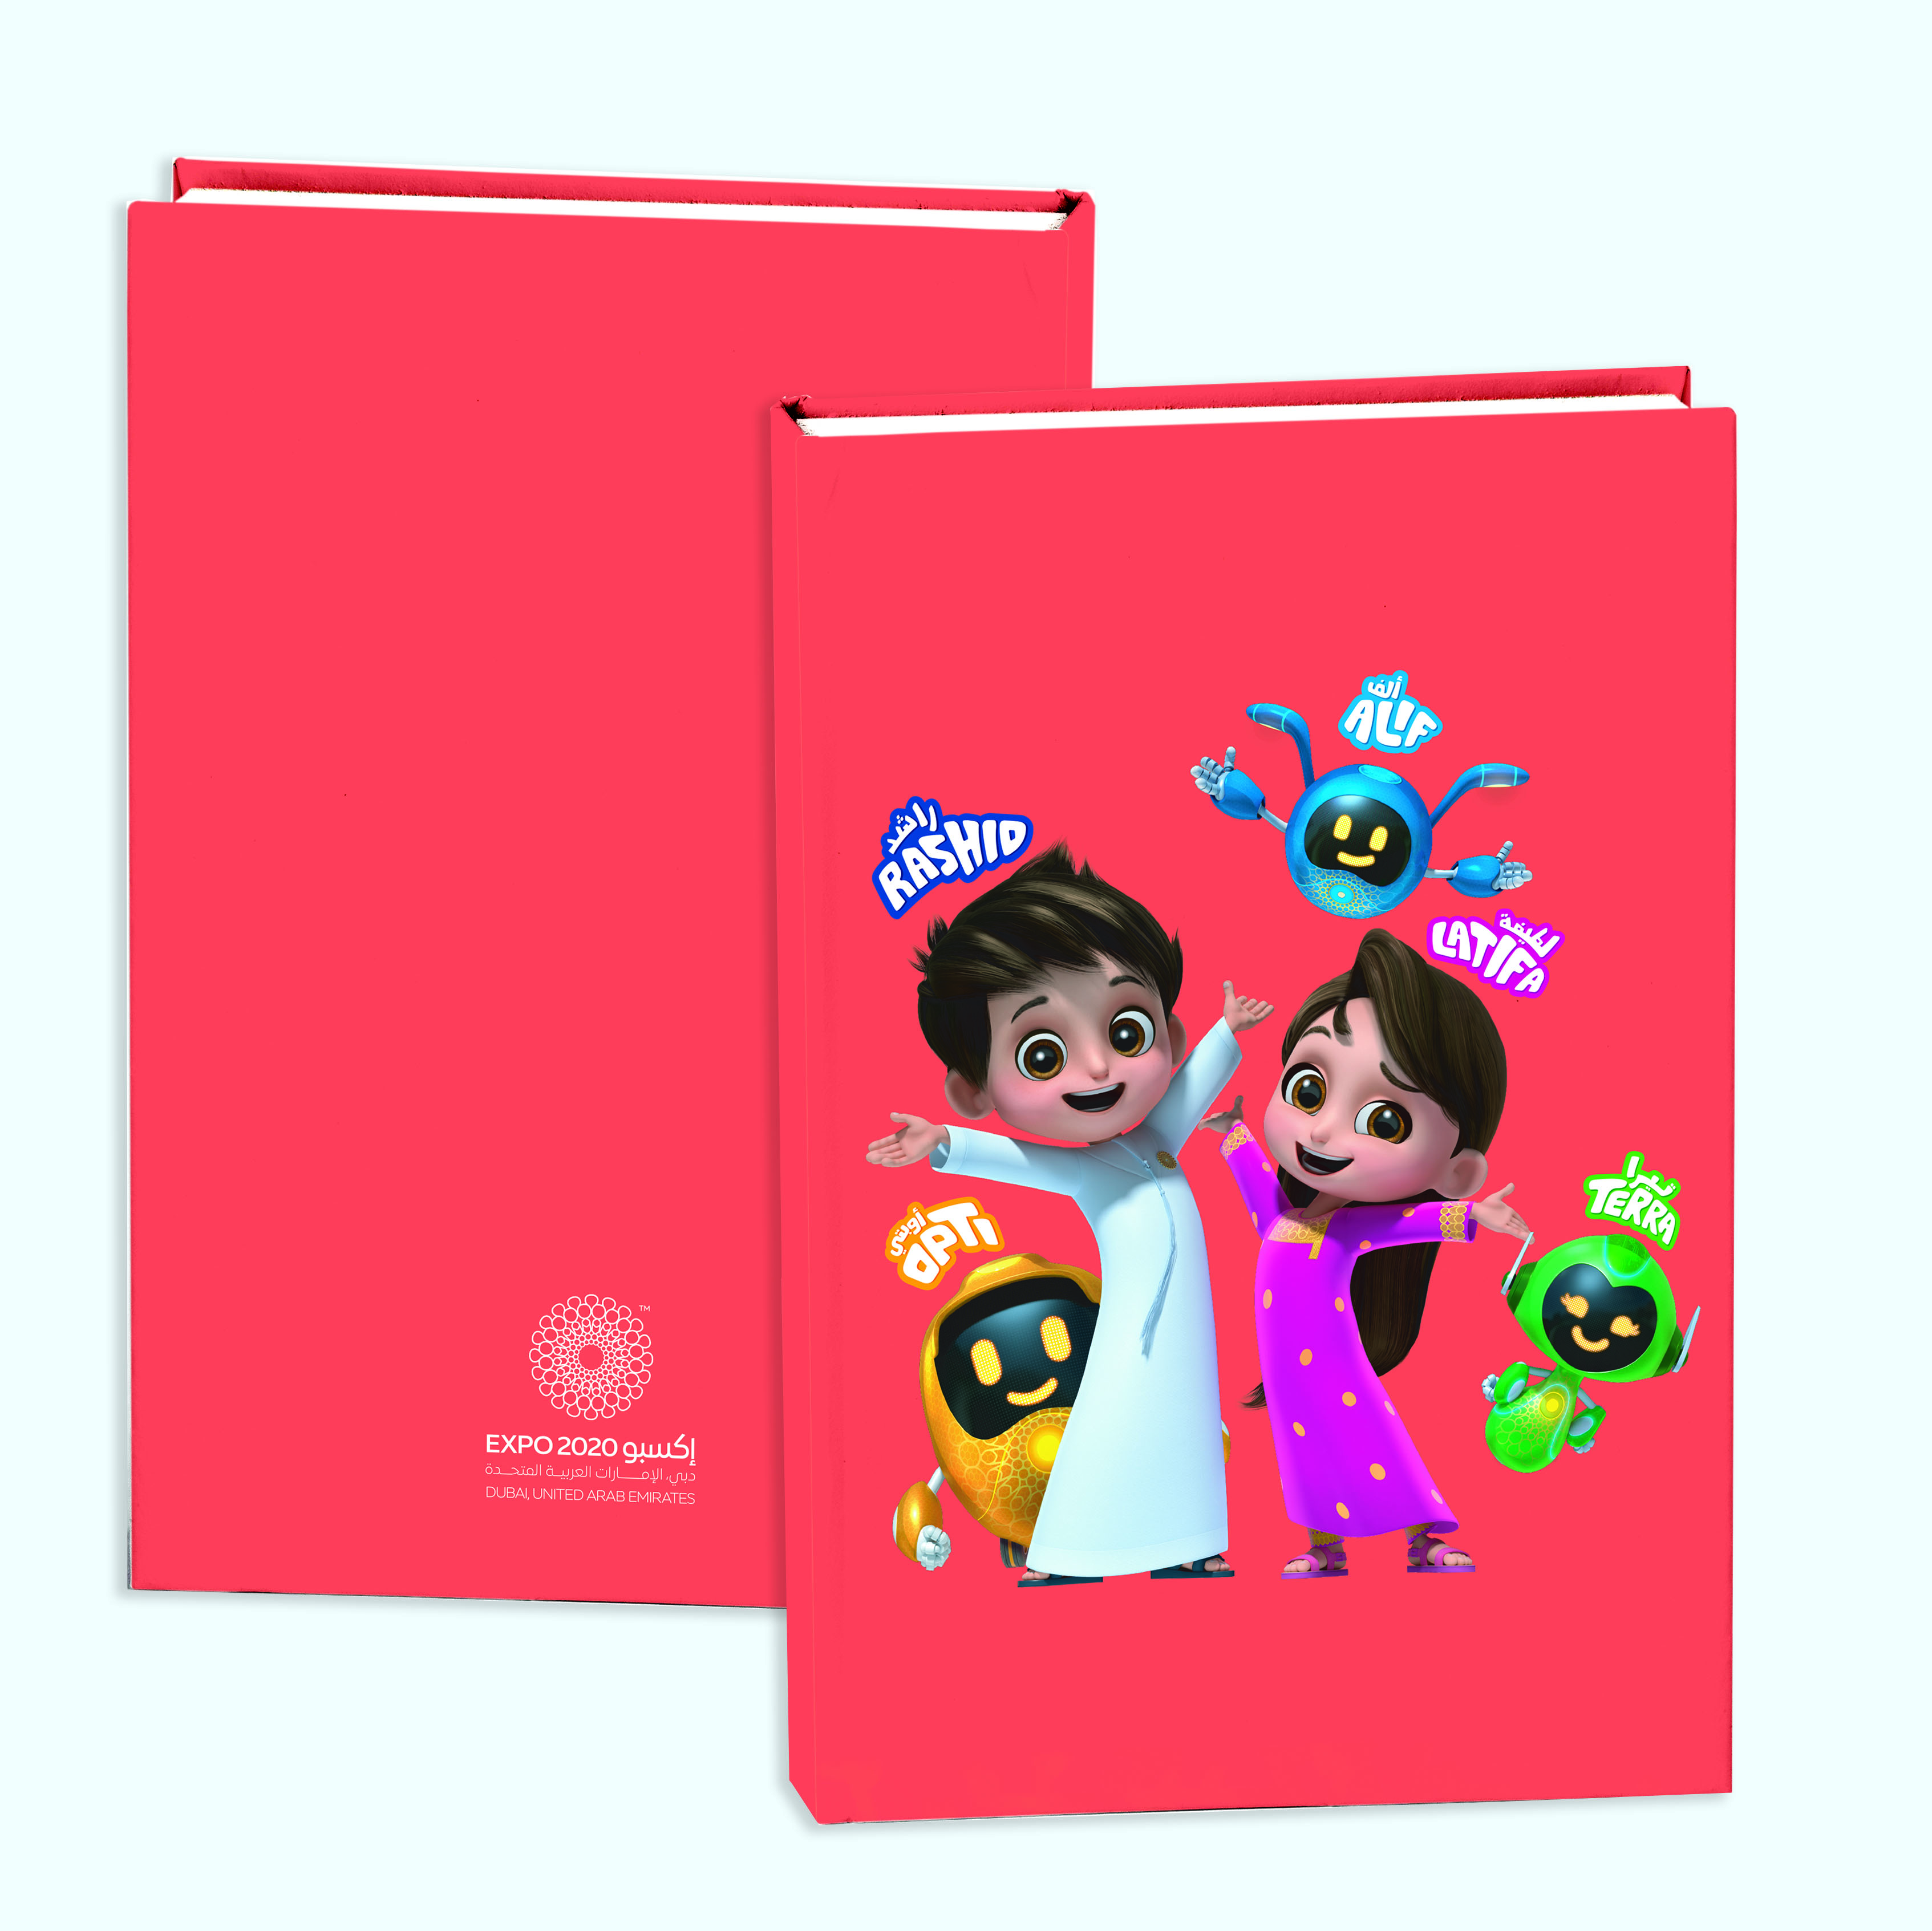 Expo 2020 Dubai Mascots A5 Hardcase Exercise Books Pack of 2 - 192 Pages